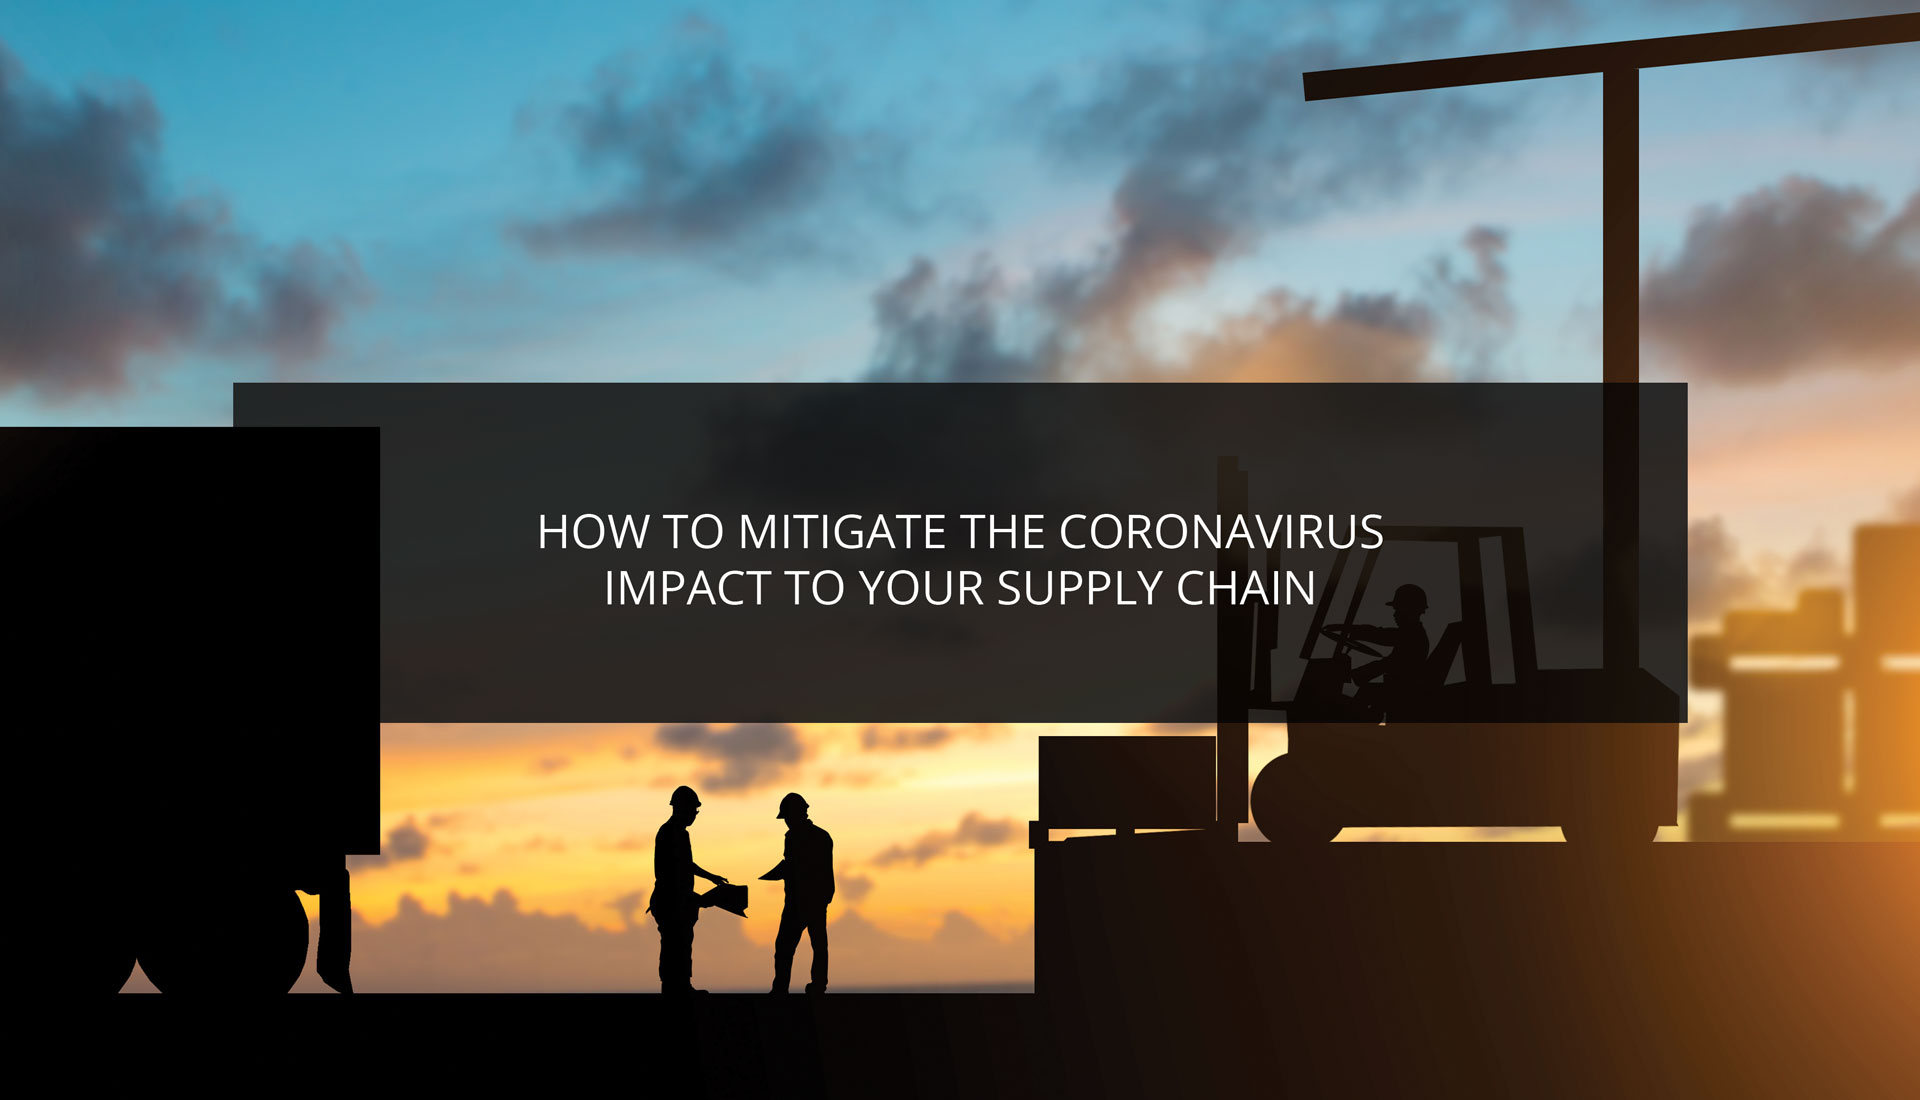 How to Mitigate the Coronavirus Impact to Your Supply Chain